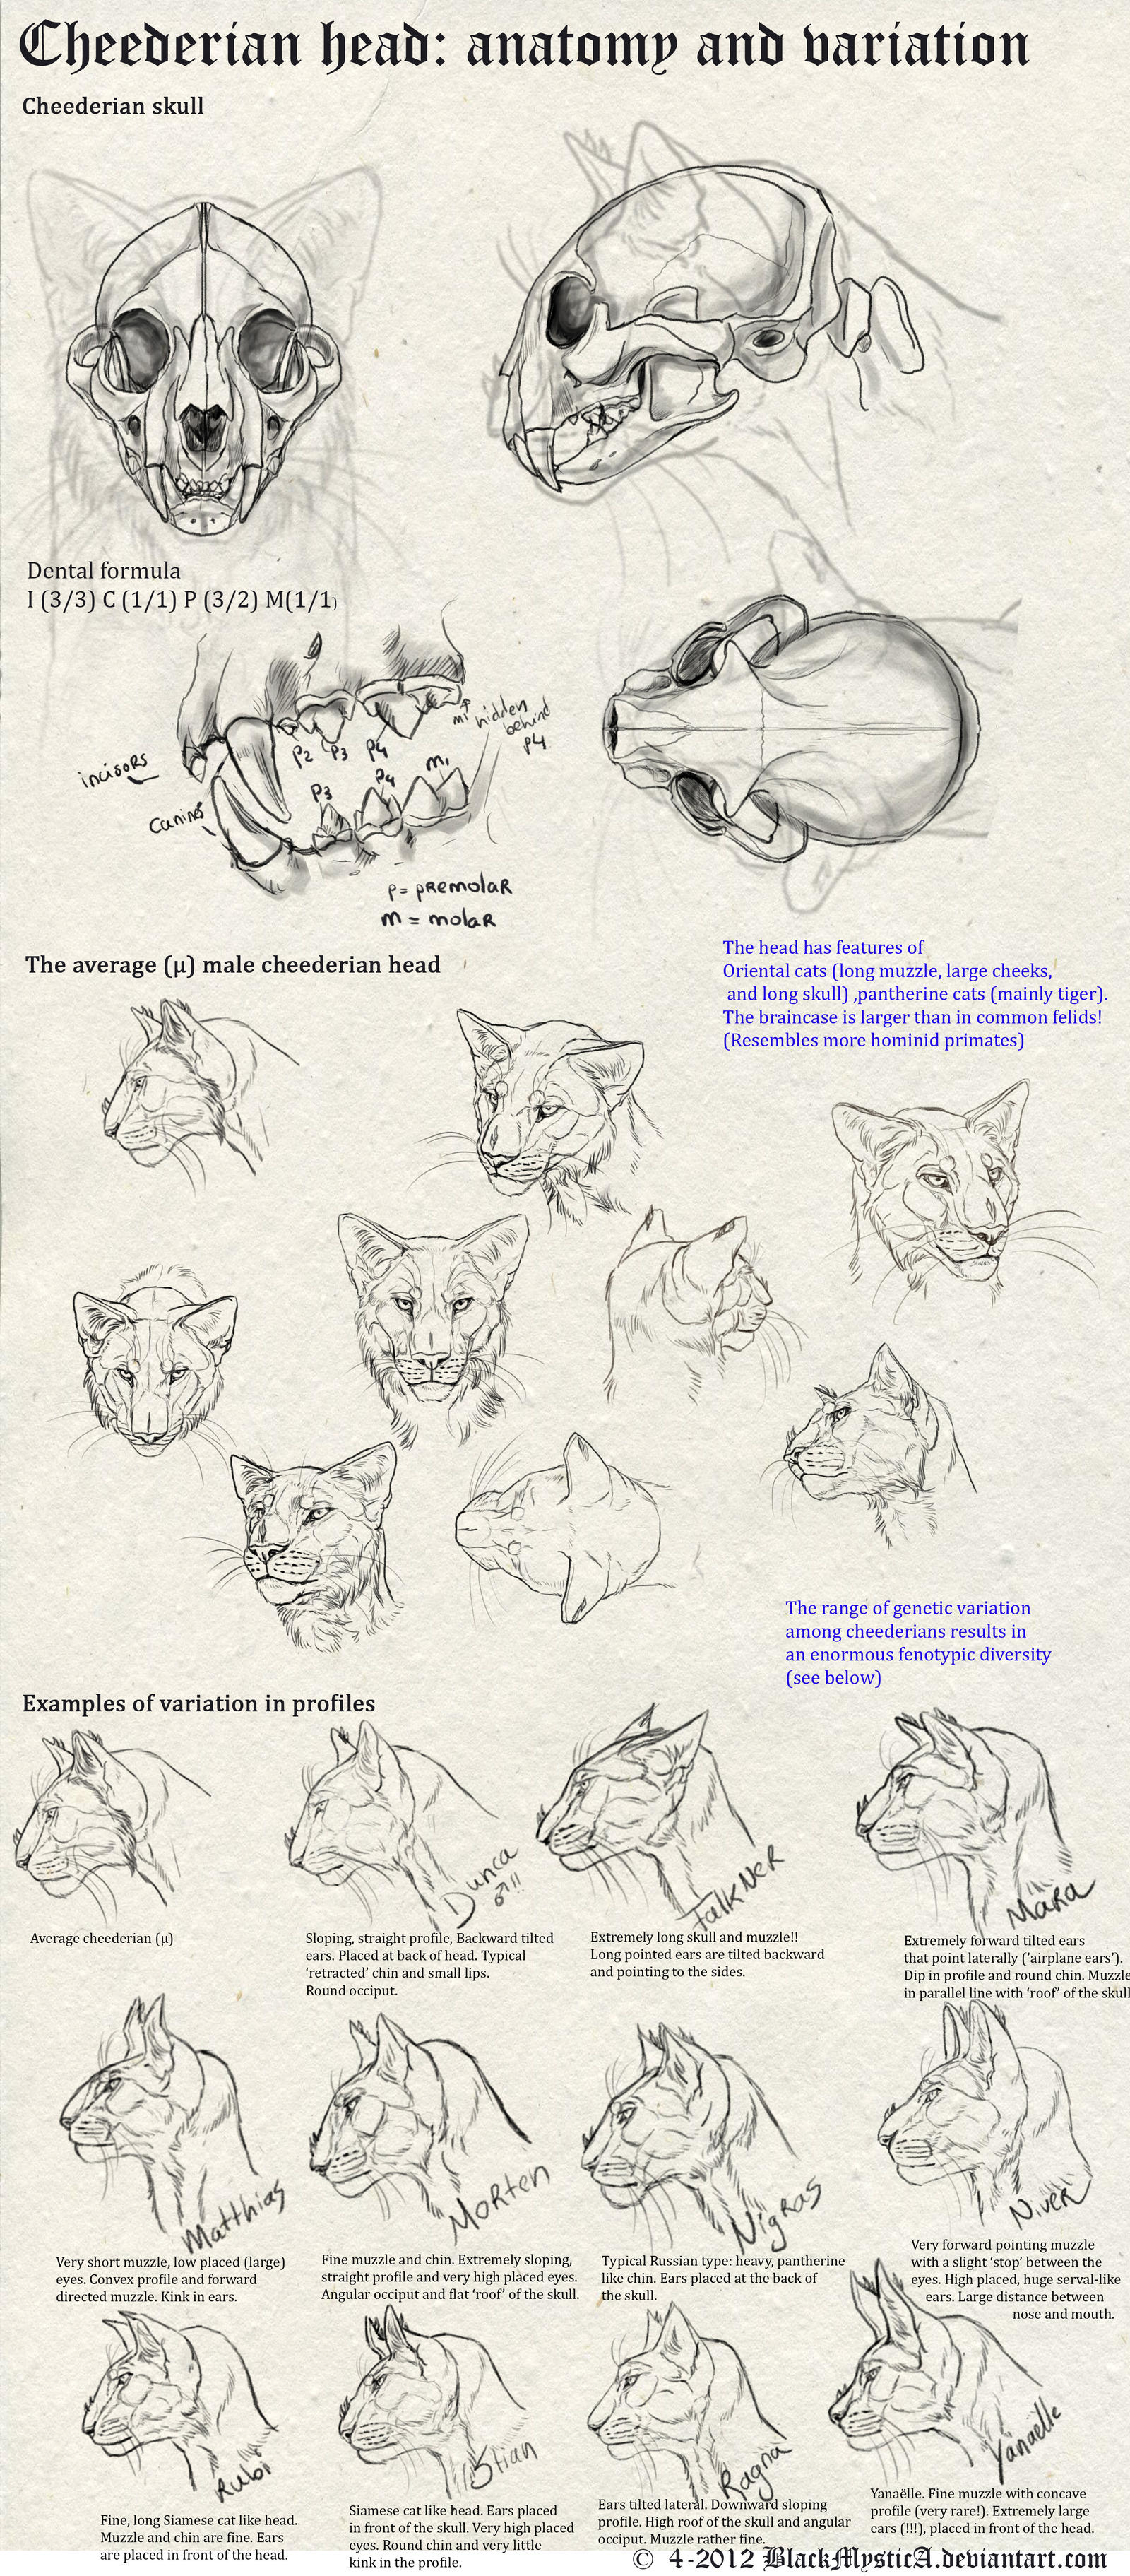 OUT of DATE - Cheederian head anatomy by FelisGlacialis on DeviantArt